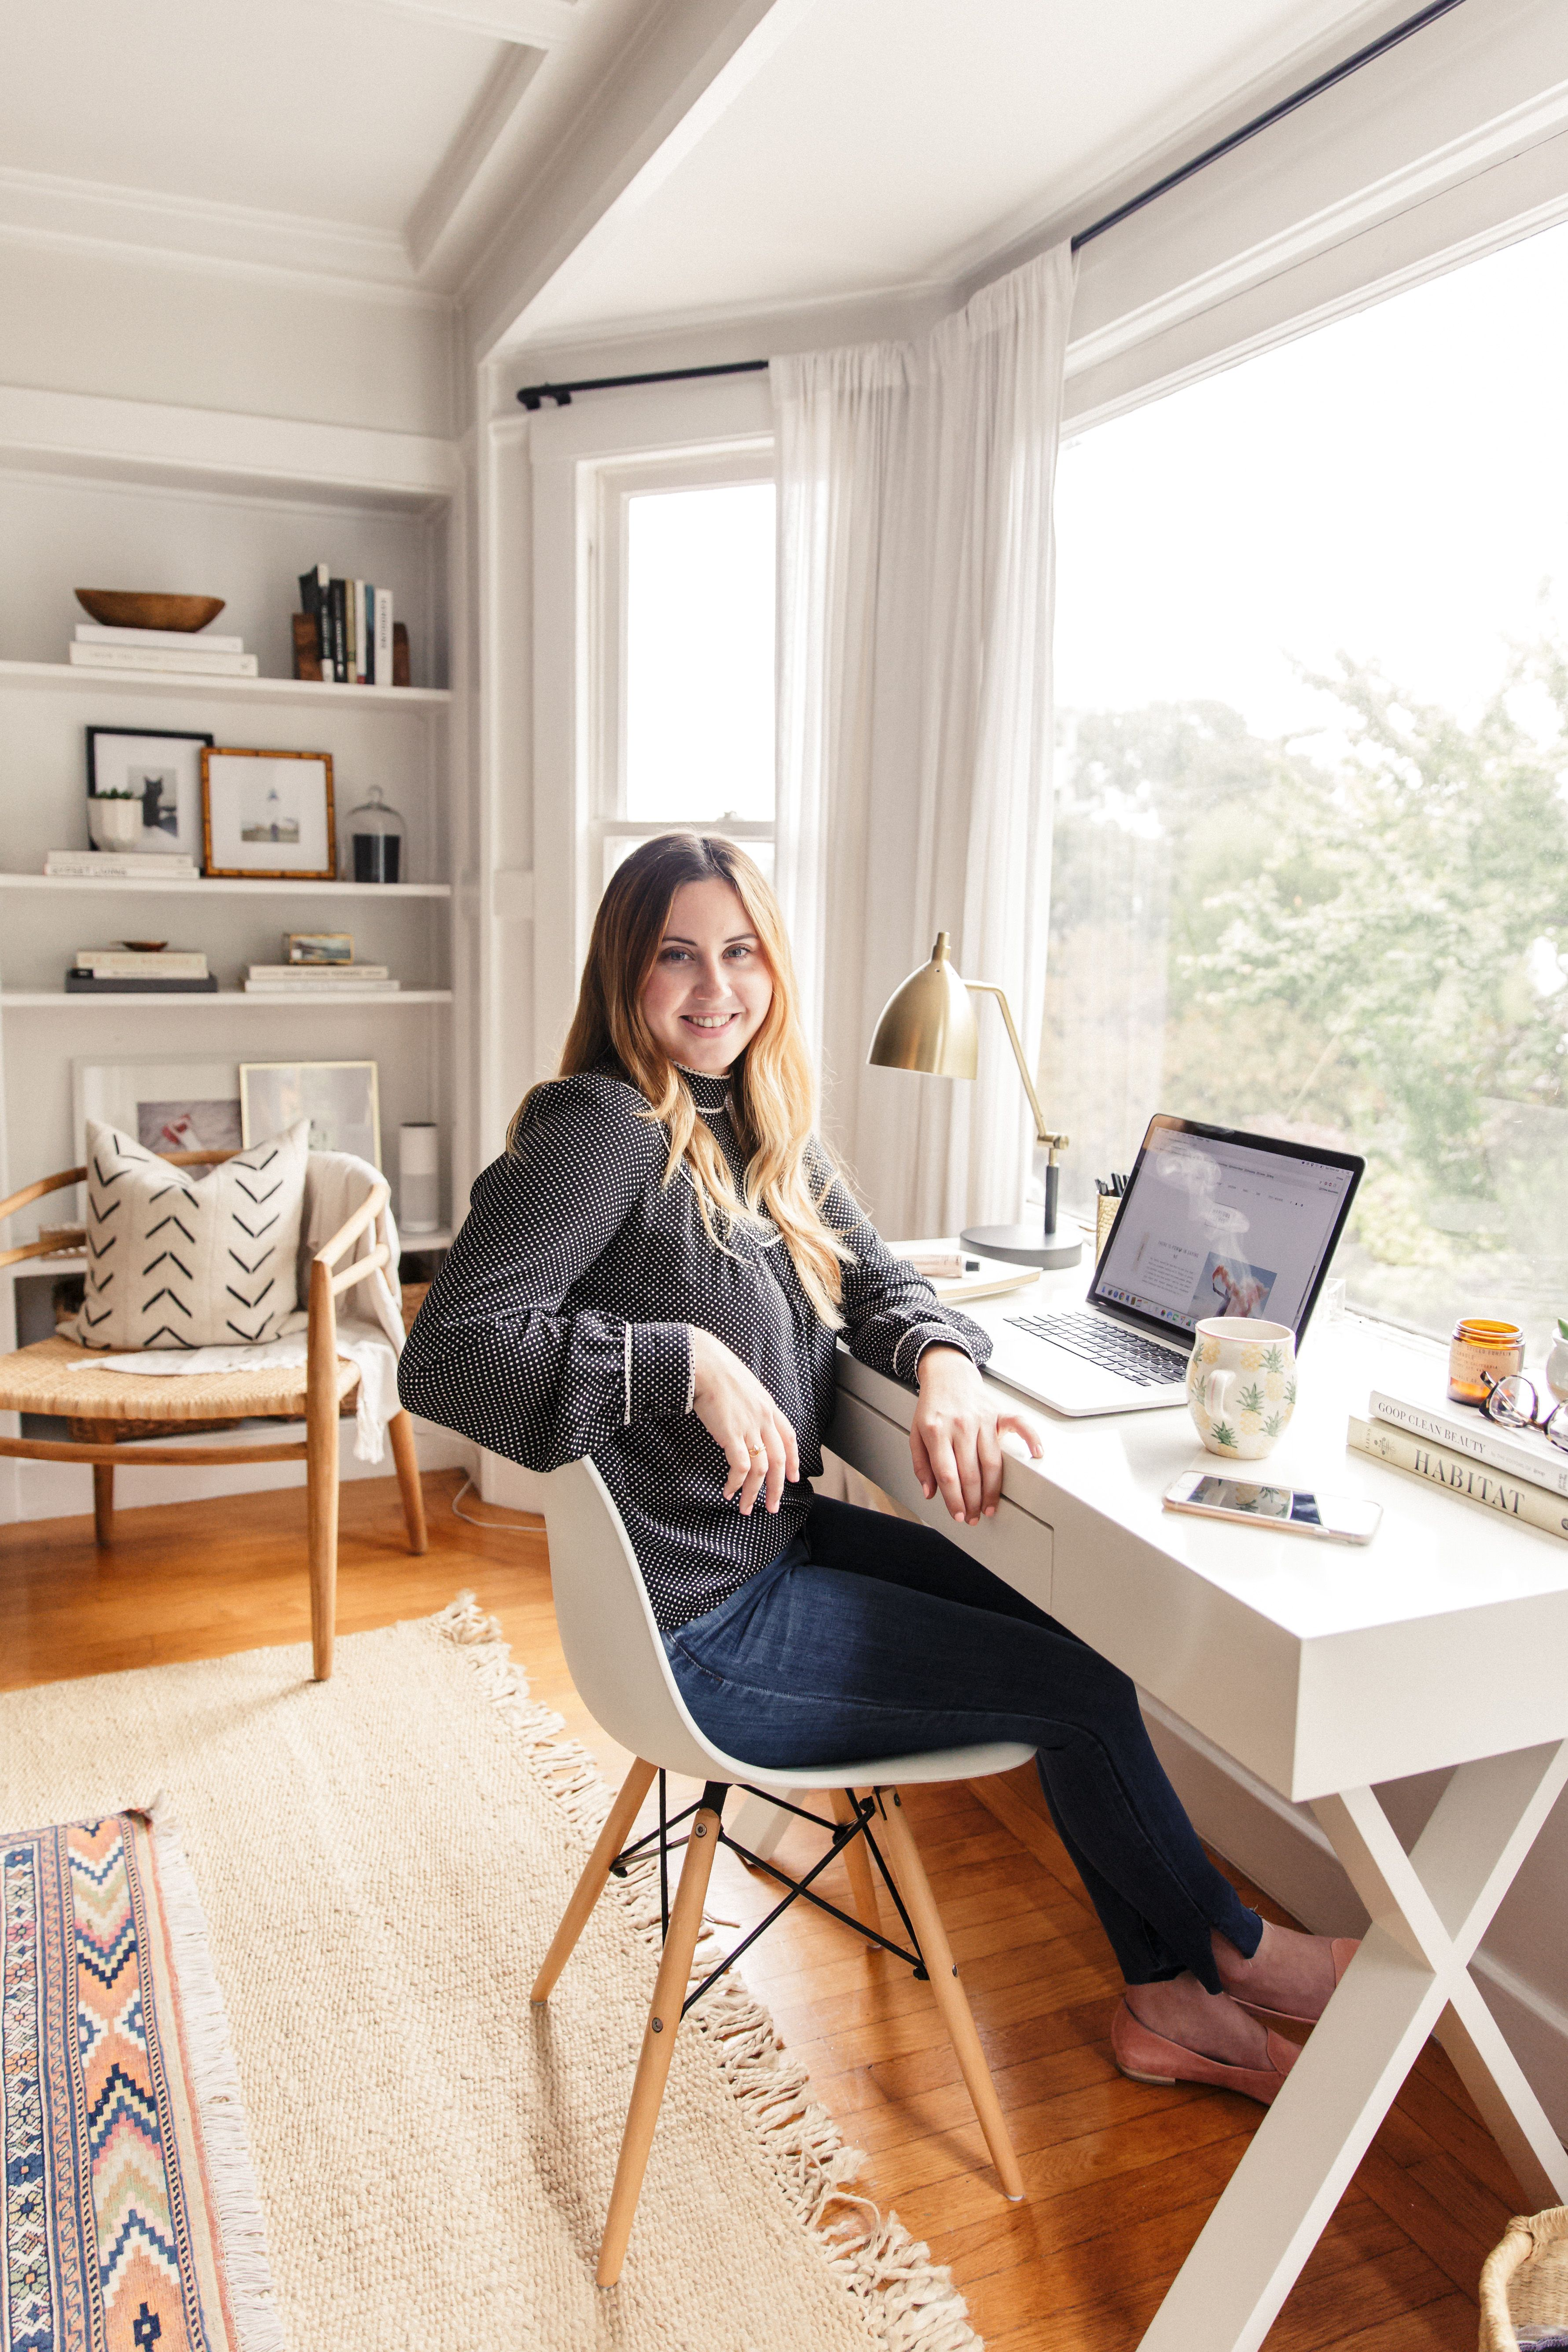 How To Make A Small Office Work Harlowe James Desk In Living Room Small Space Office Living Room Office